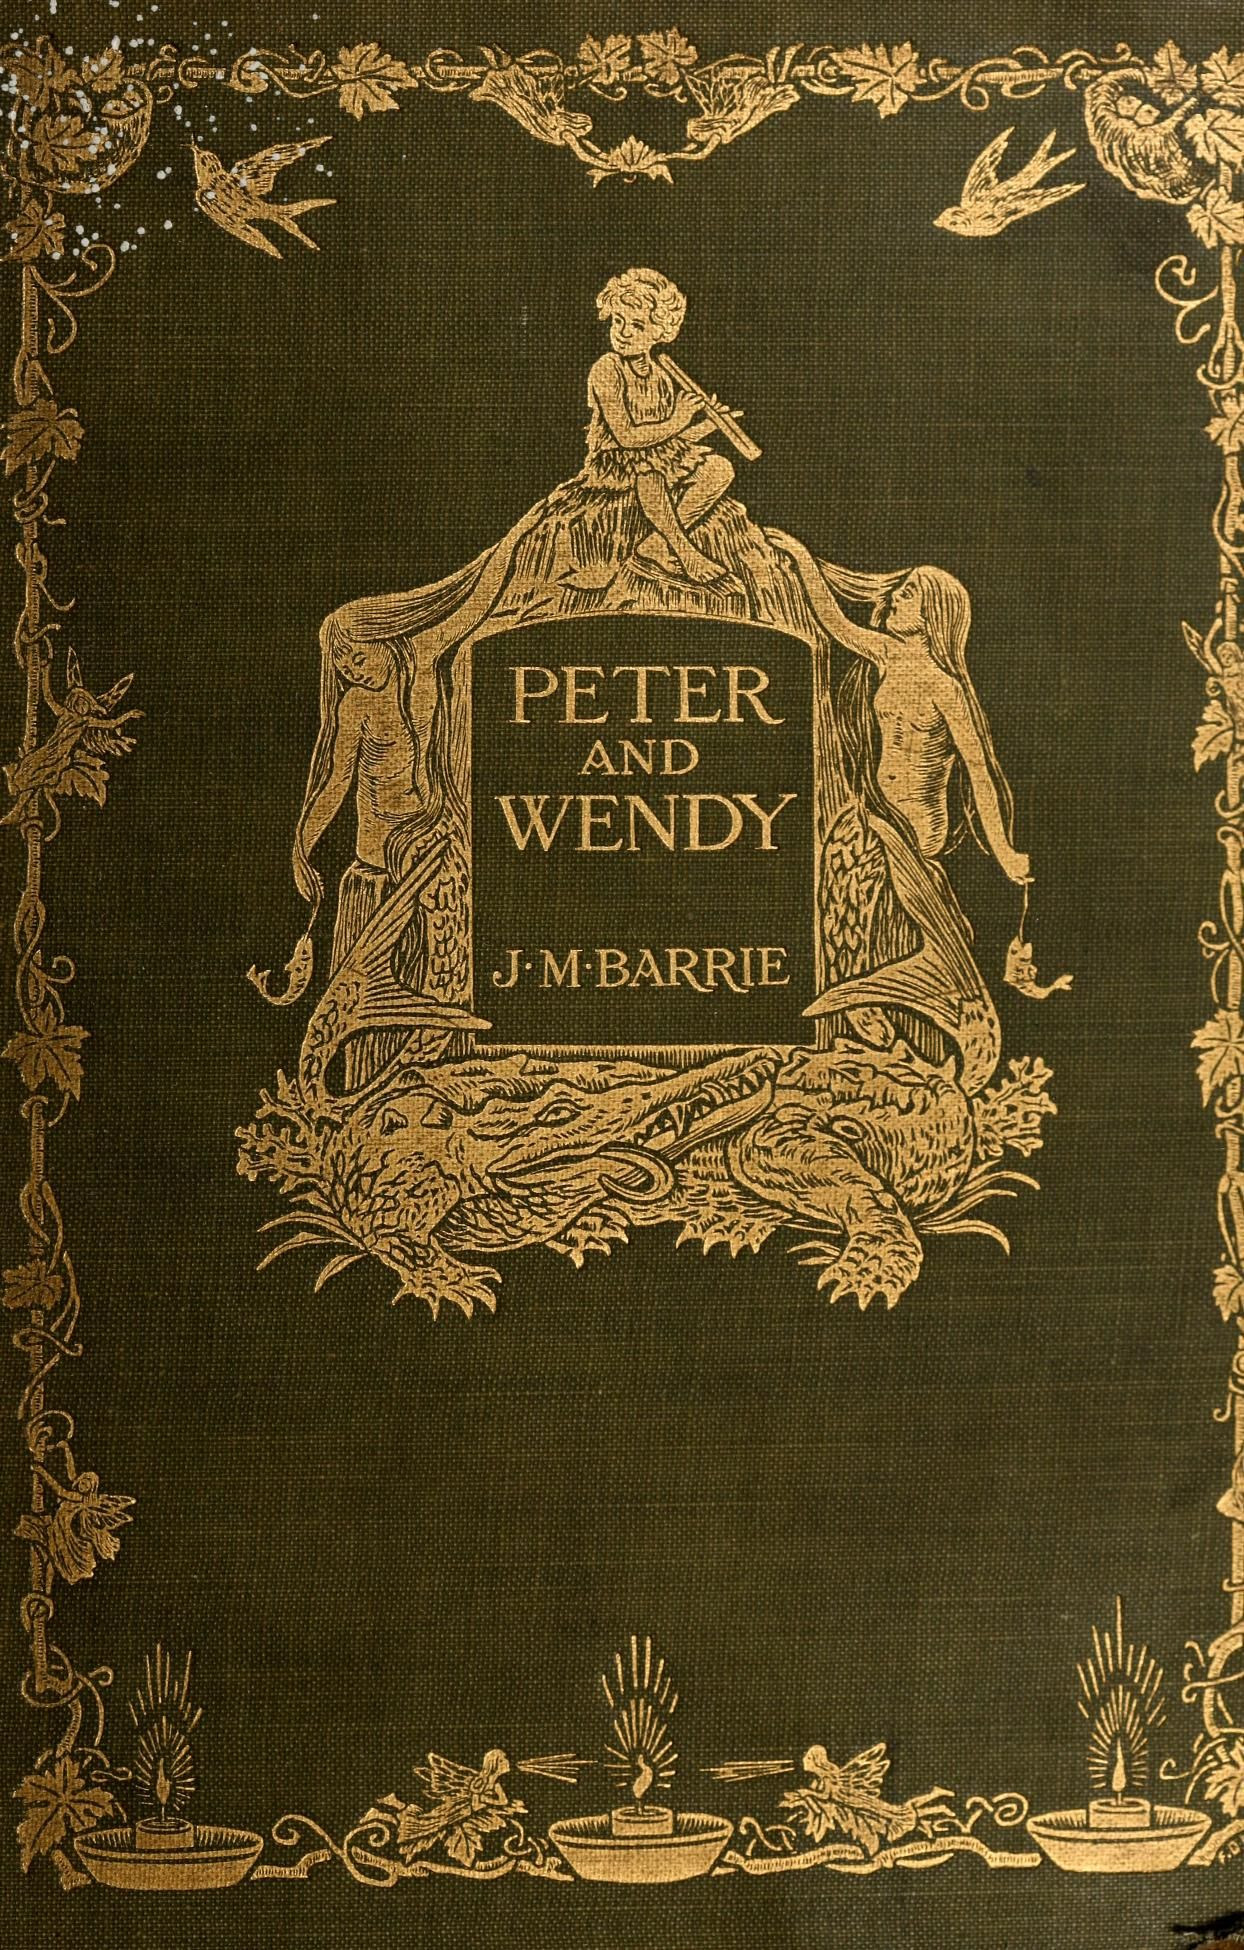 Peter Pan Libro Original Peter And Wendy J M Barrie Peter Pan Book Cover